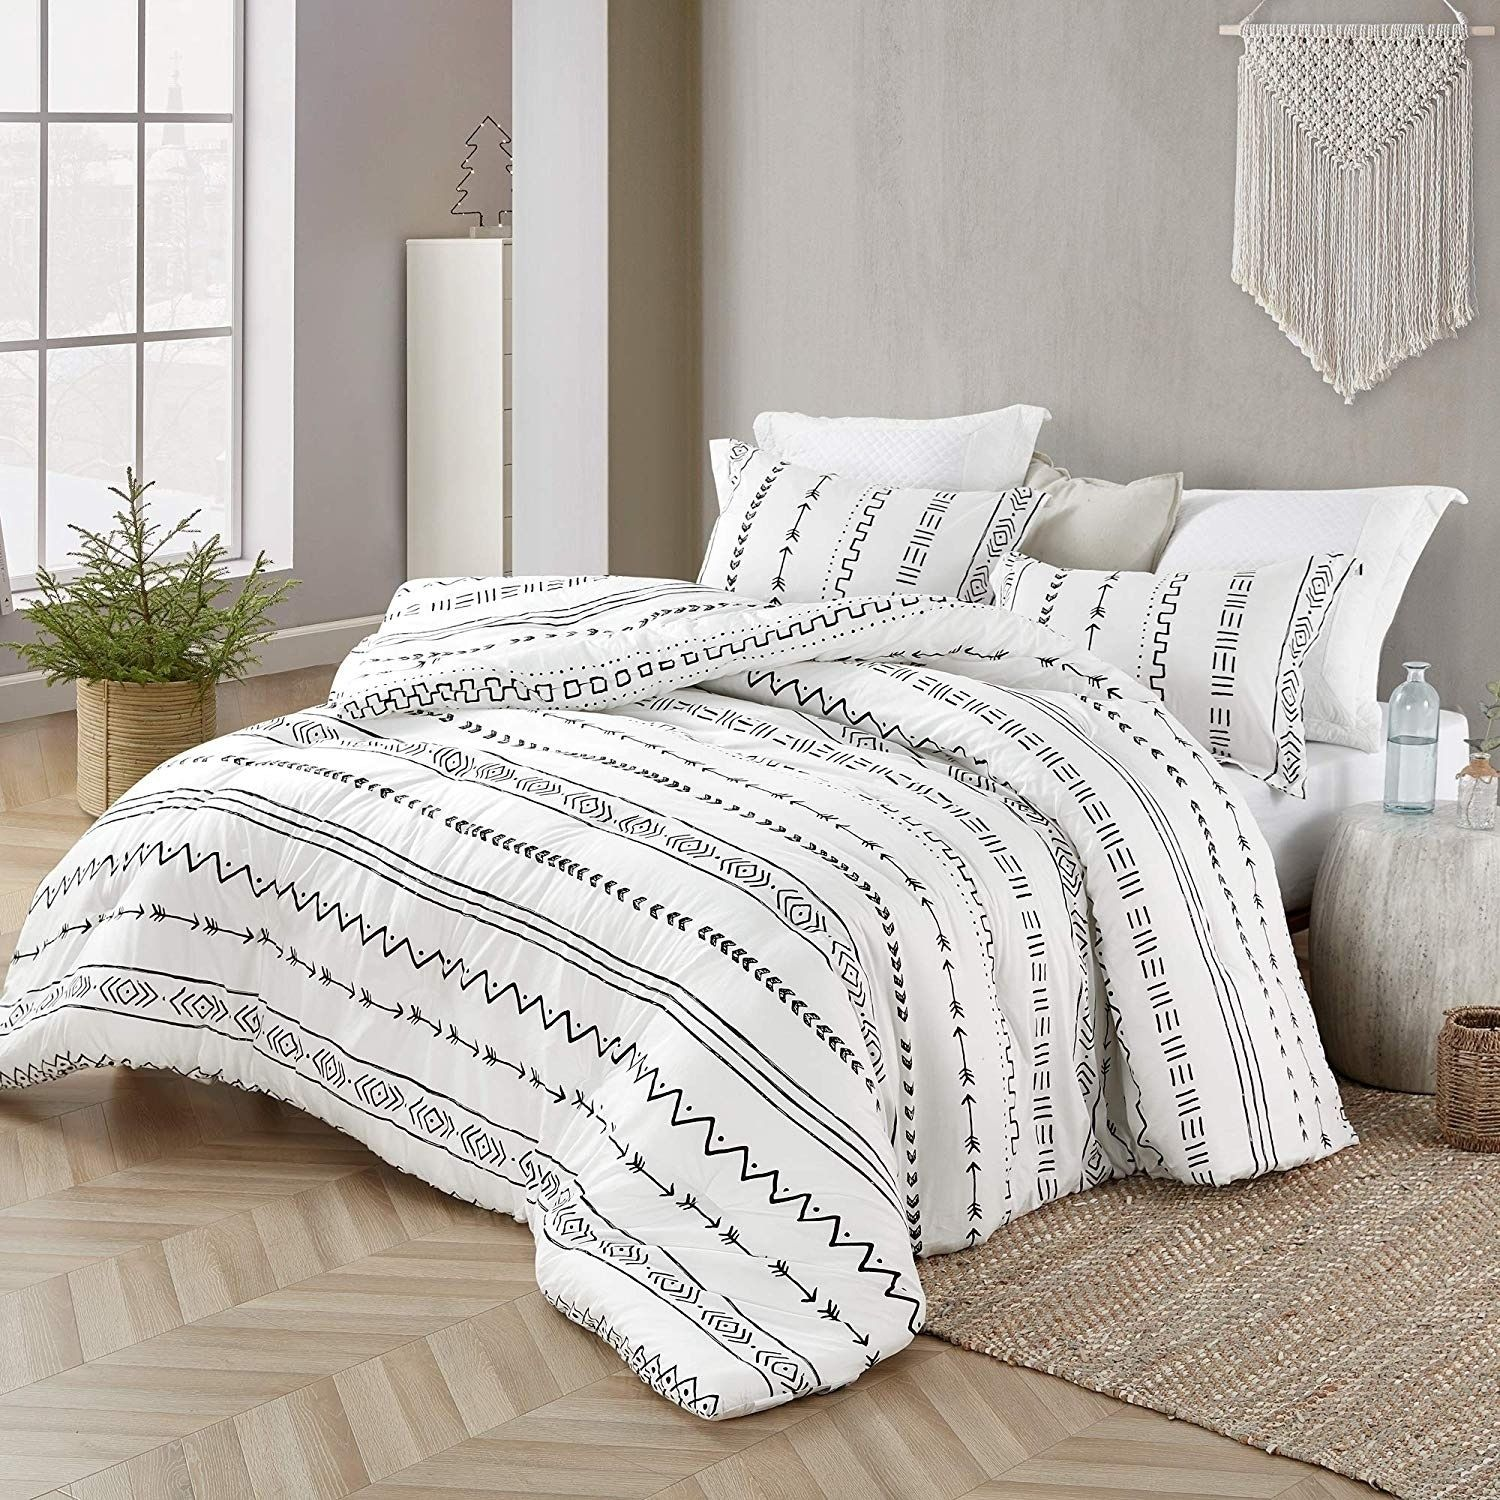 Arrow Black And White Comforter 100 Cotton Queen Standard Sham